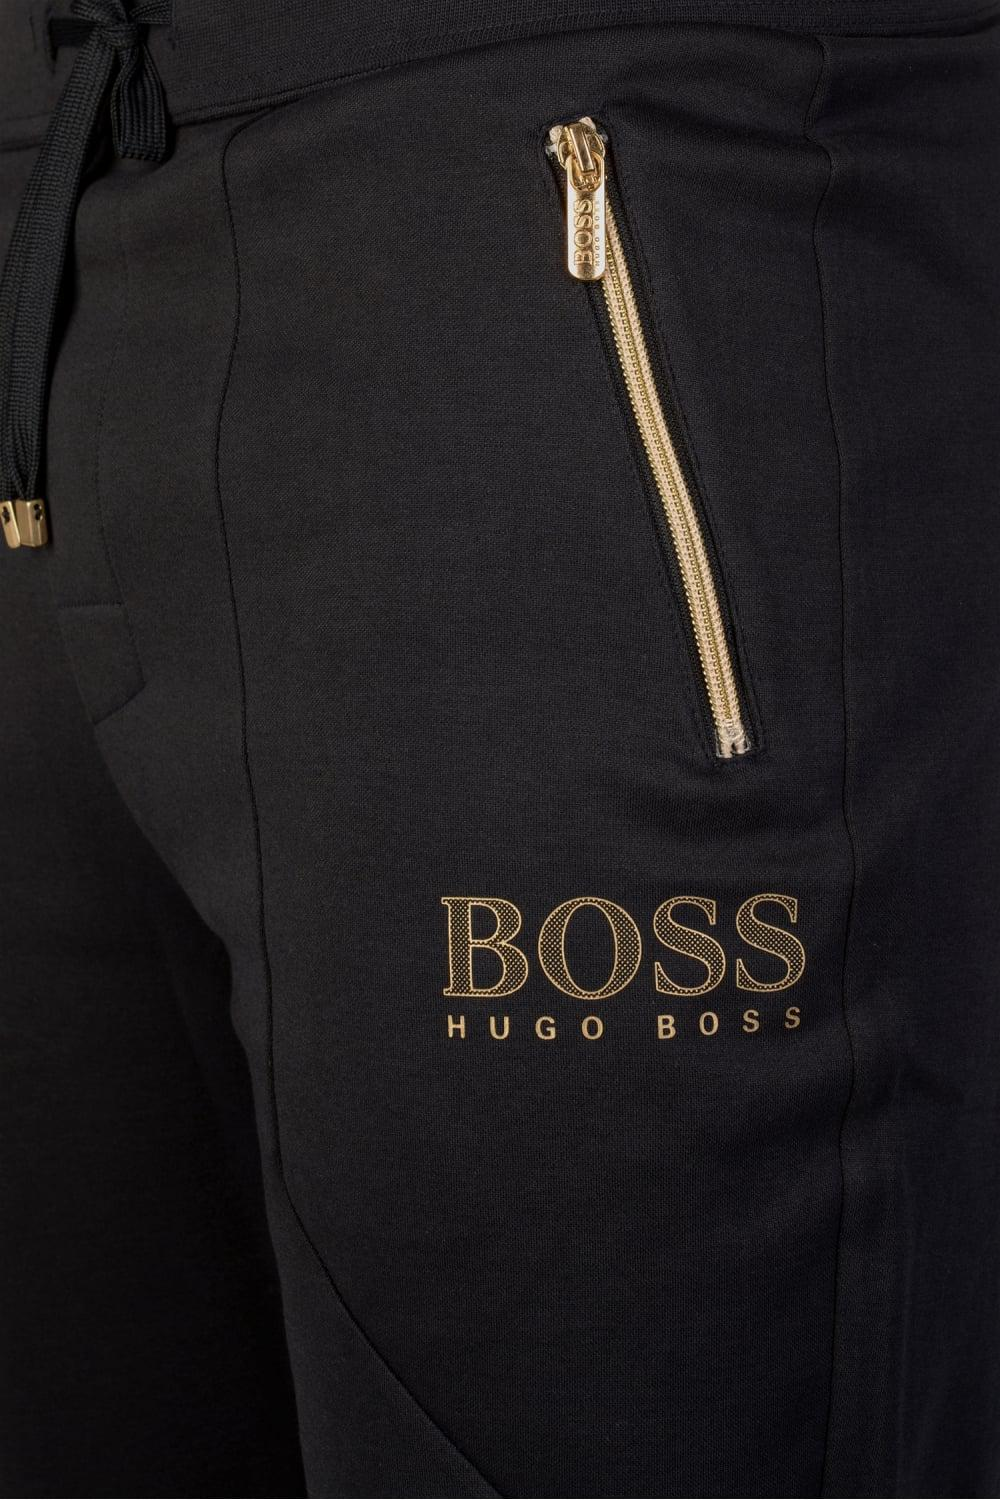 9243a6316 BOSS Tracksuit Pants Navy & Gold in Blue for Men - Lyst